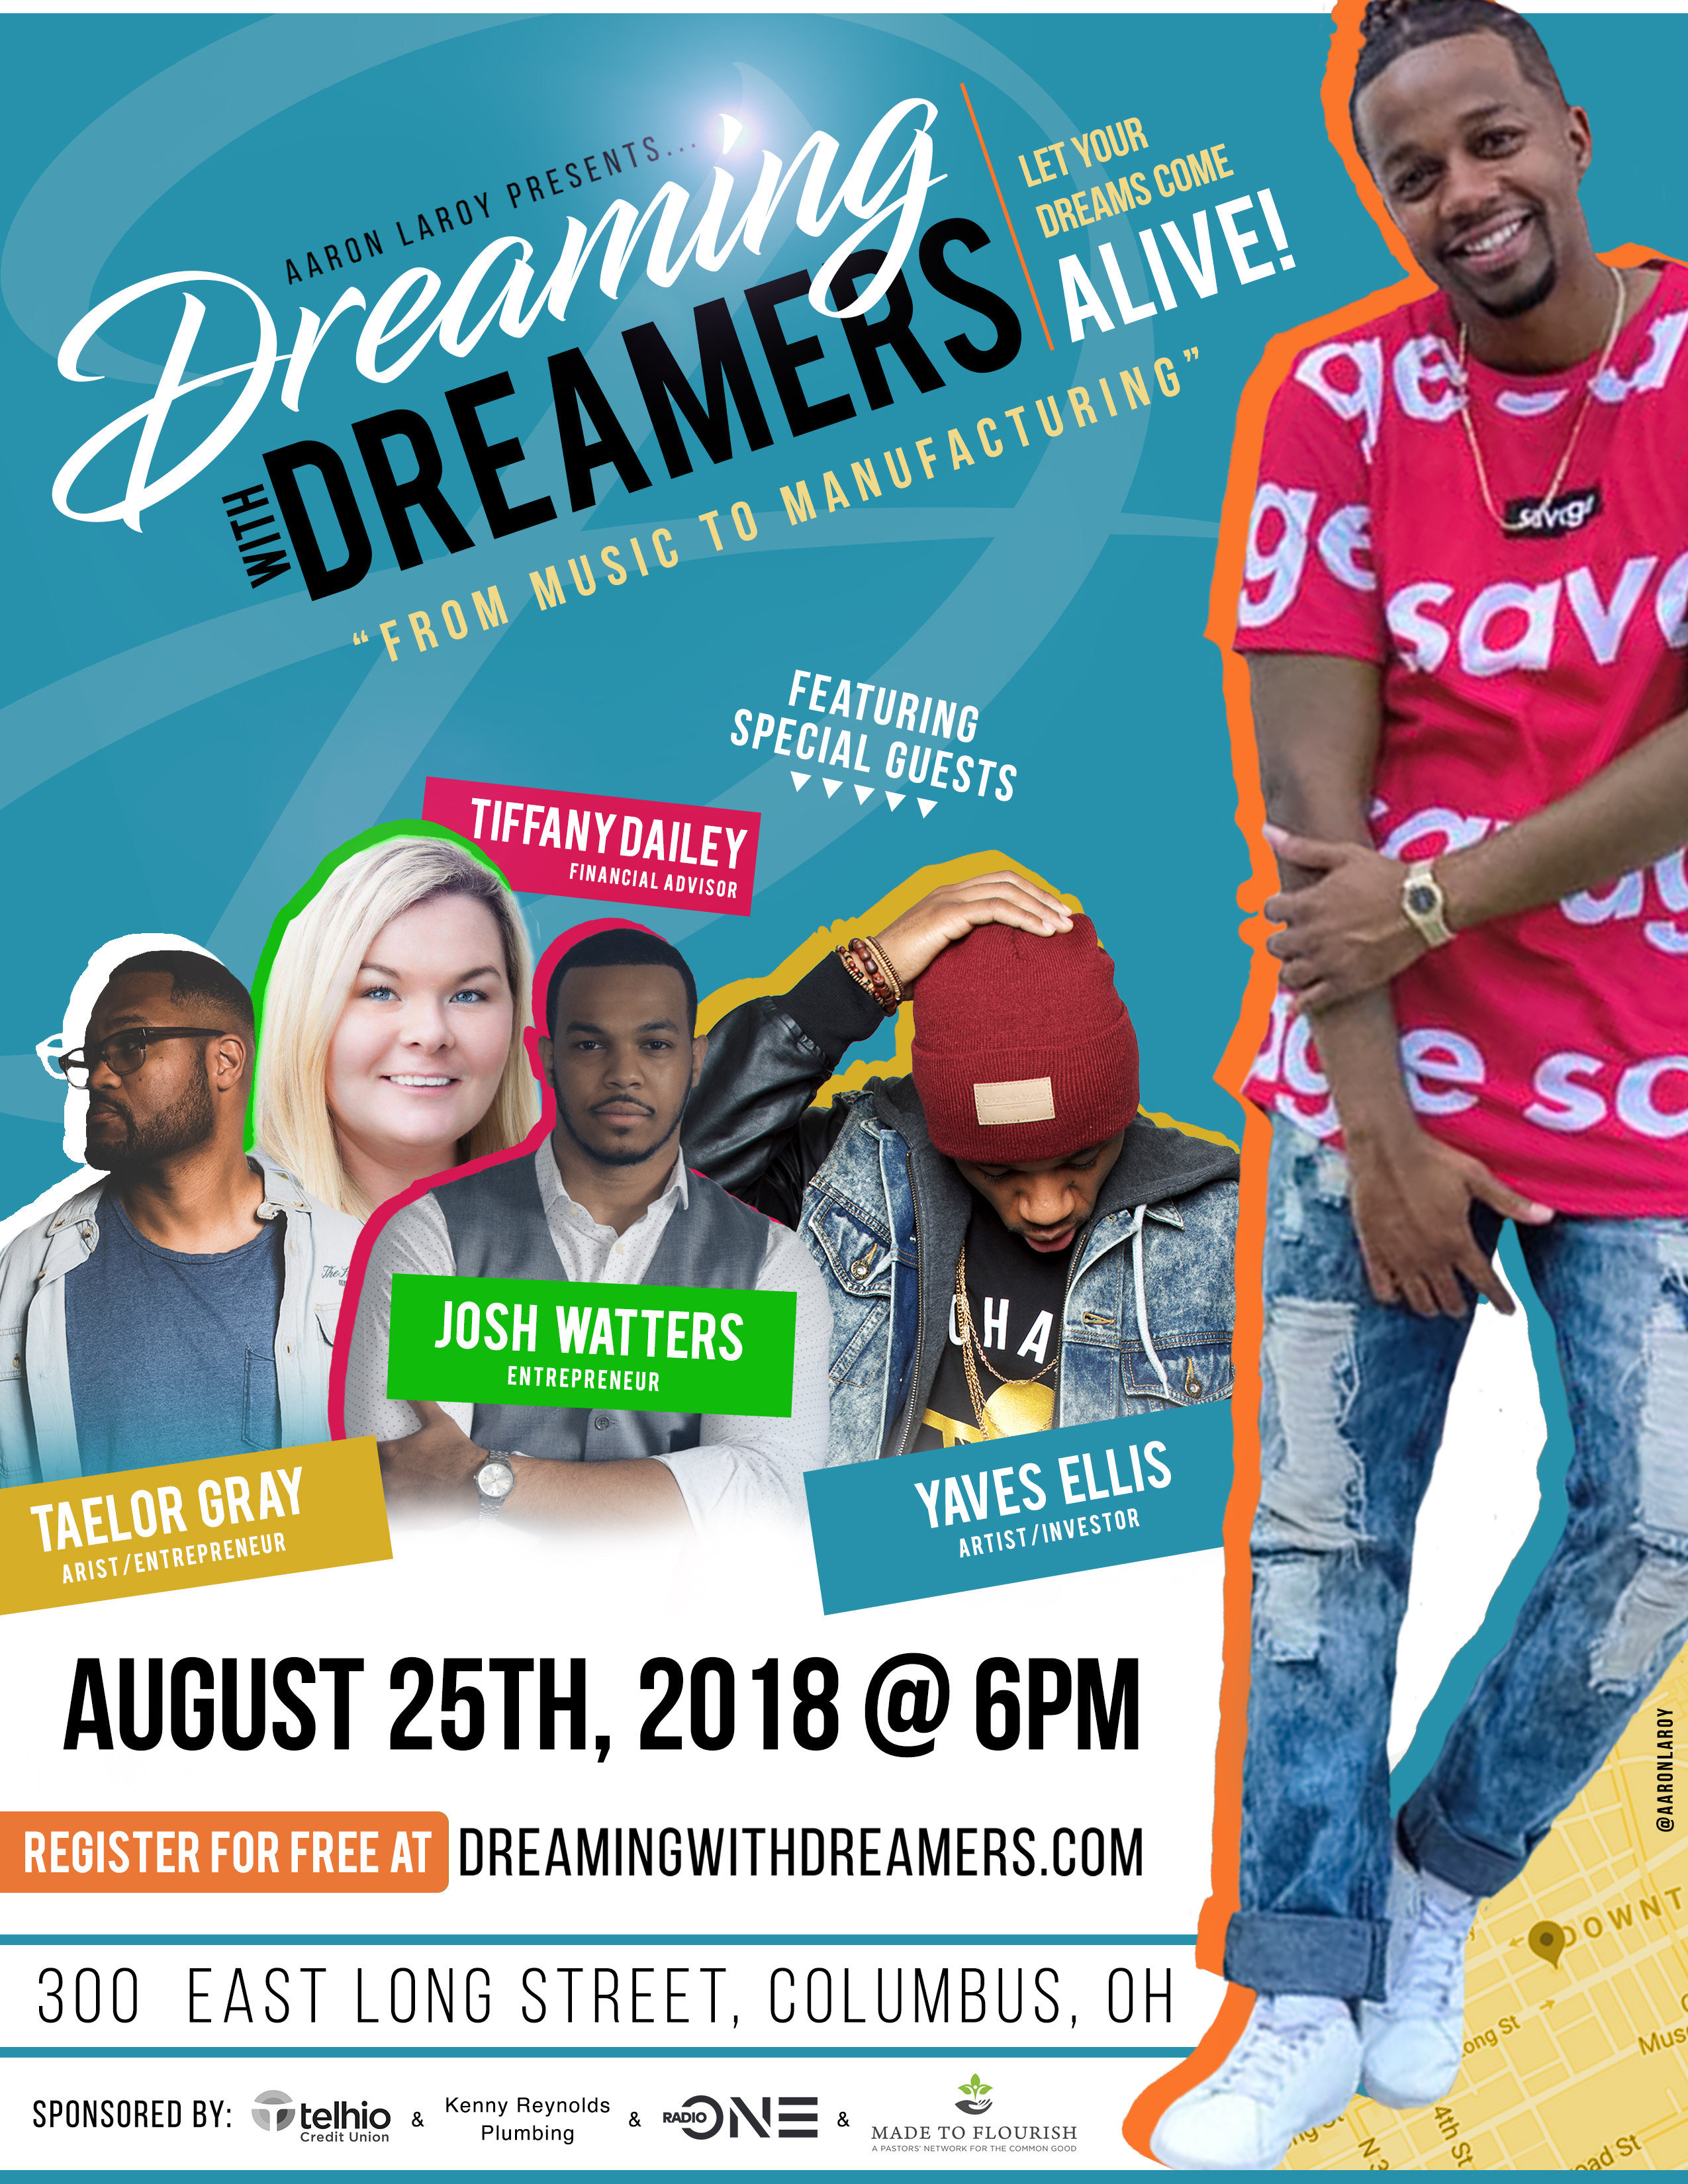 Dreaming with Dreamers